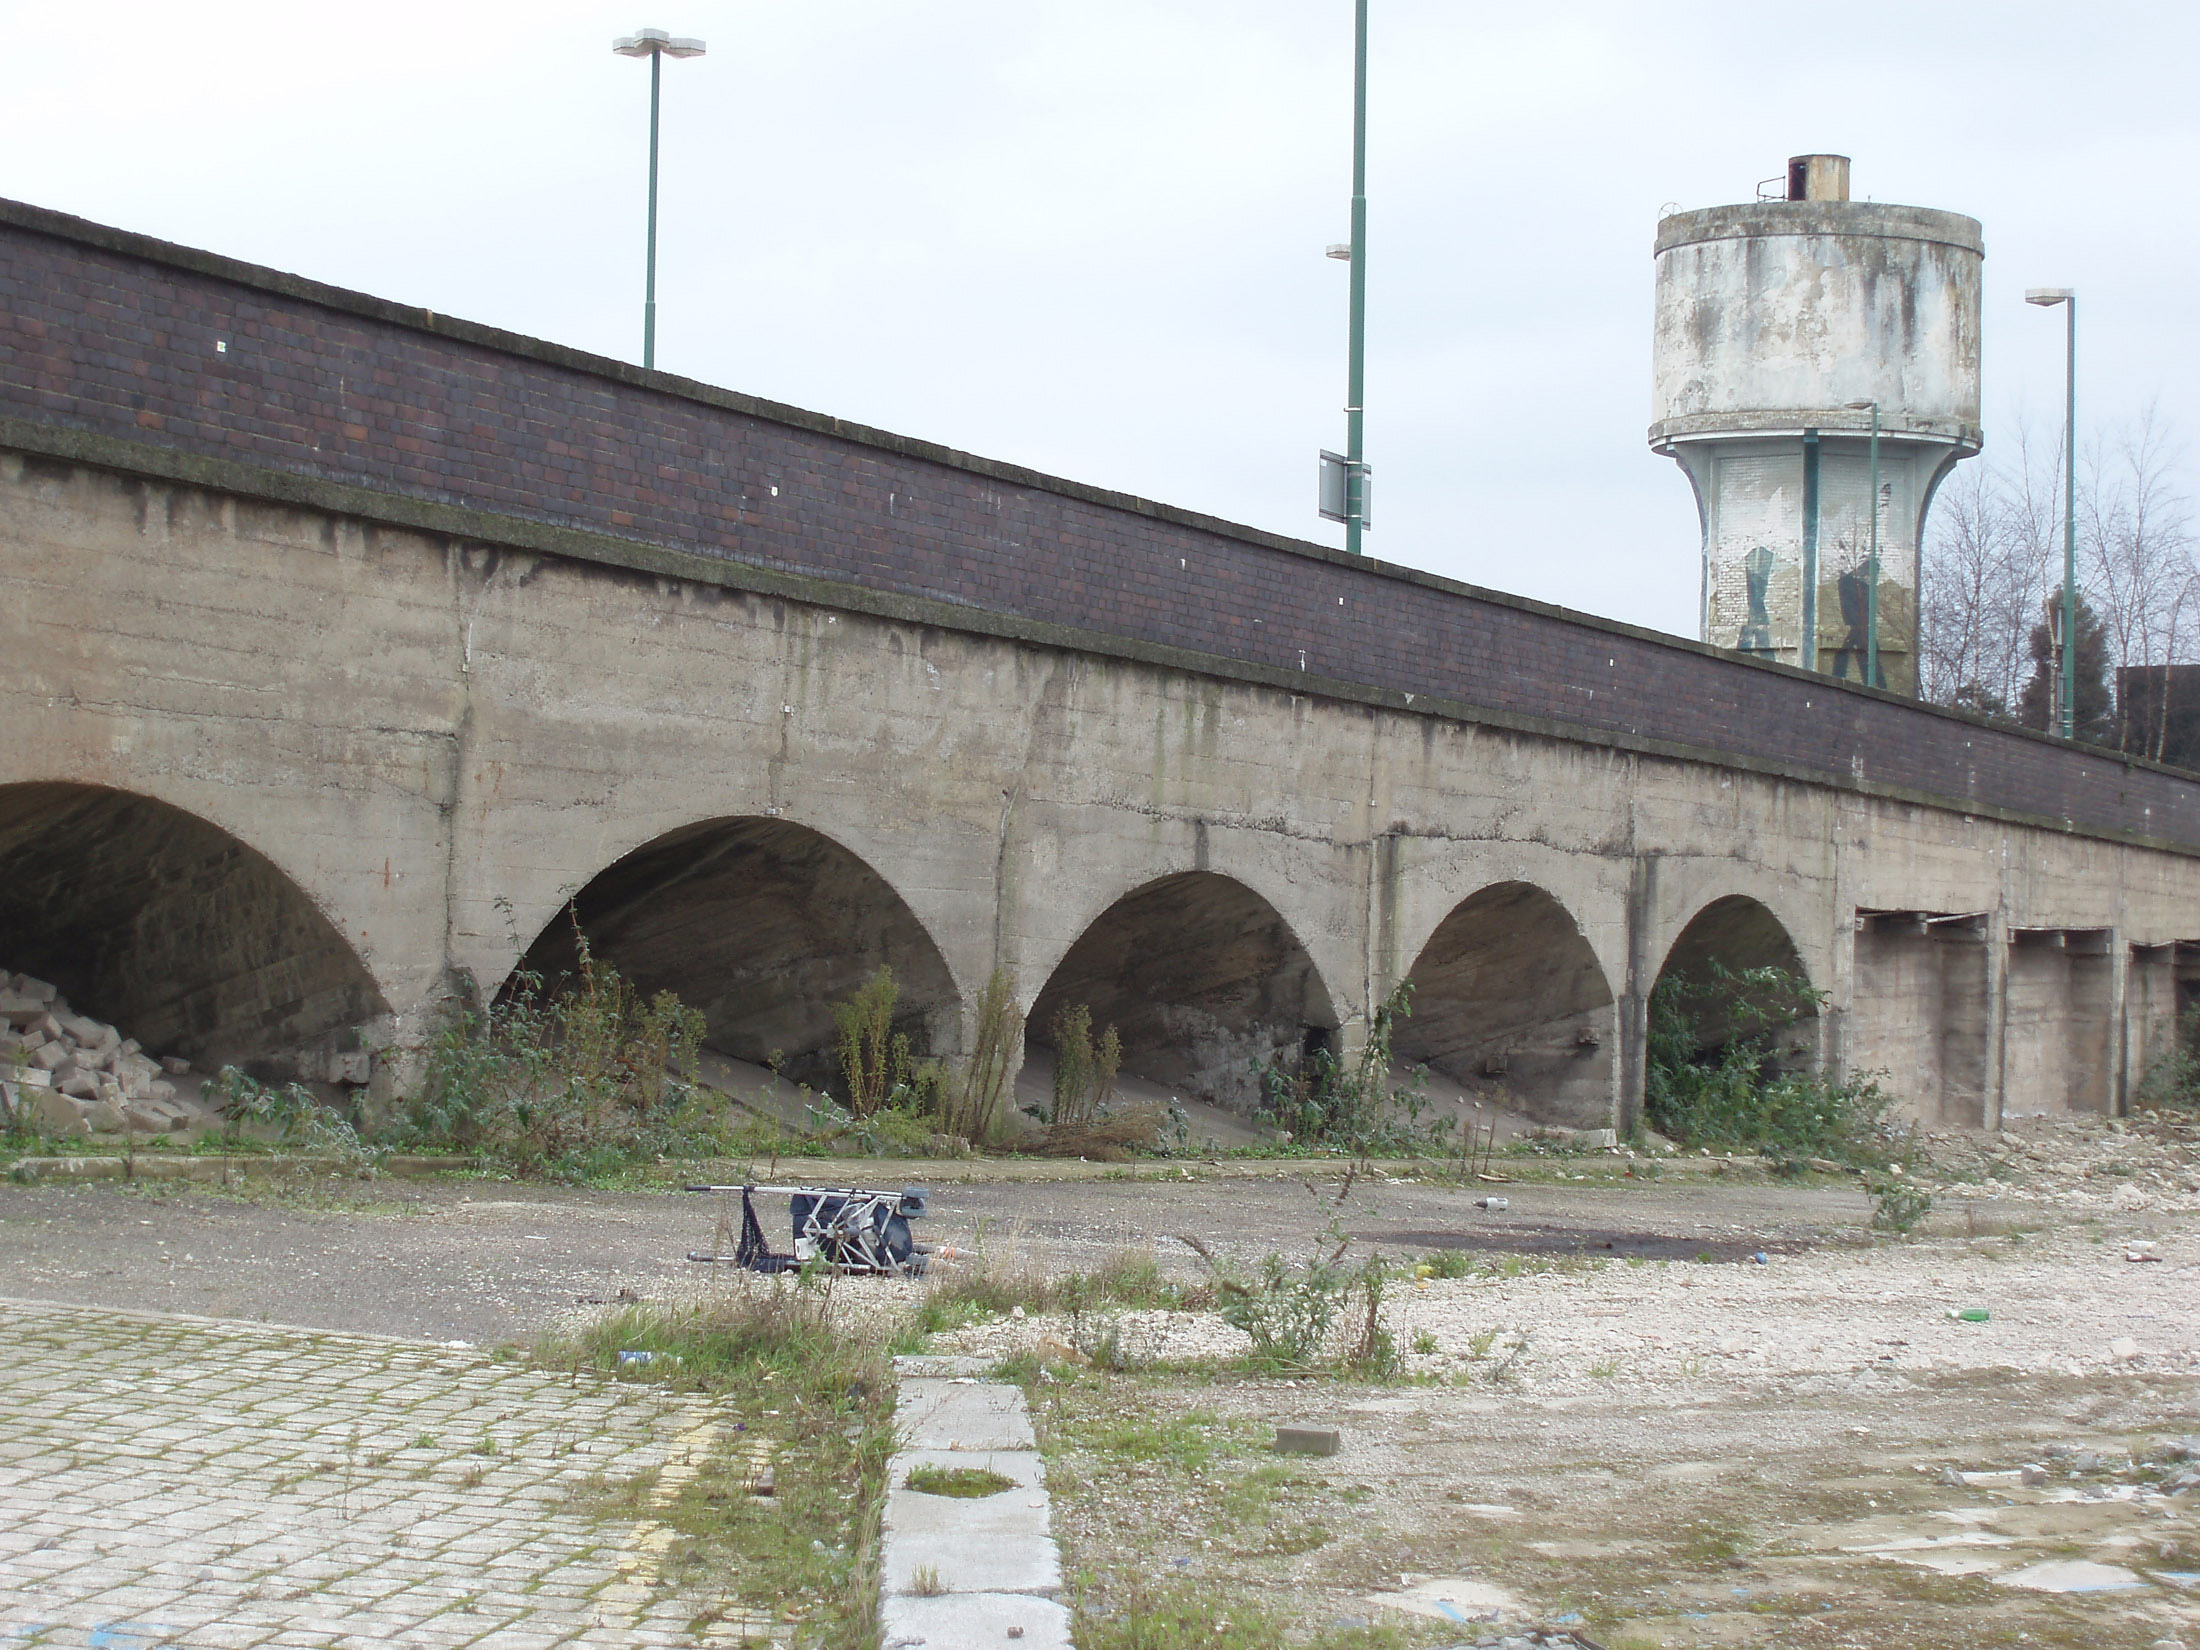 Old grungy obsolete railway bridge with arches in urban wasteland with a concrete water tower